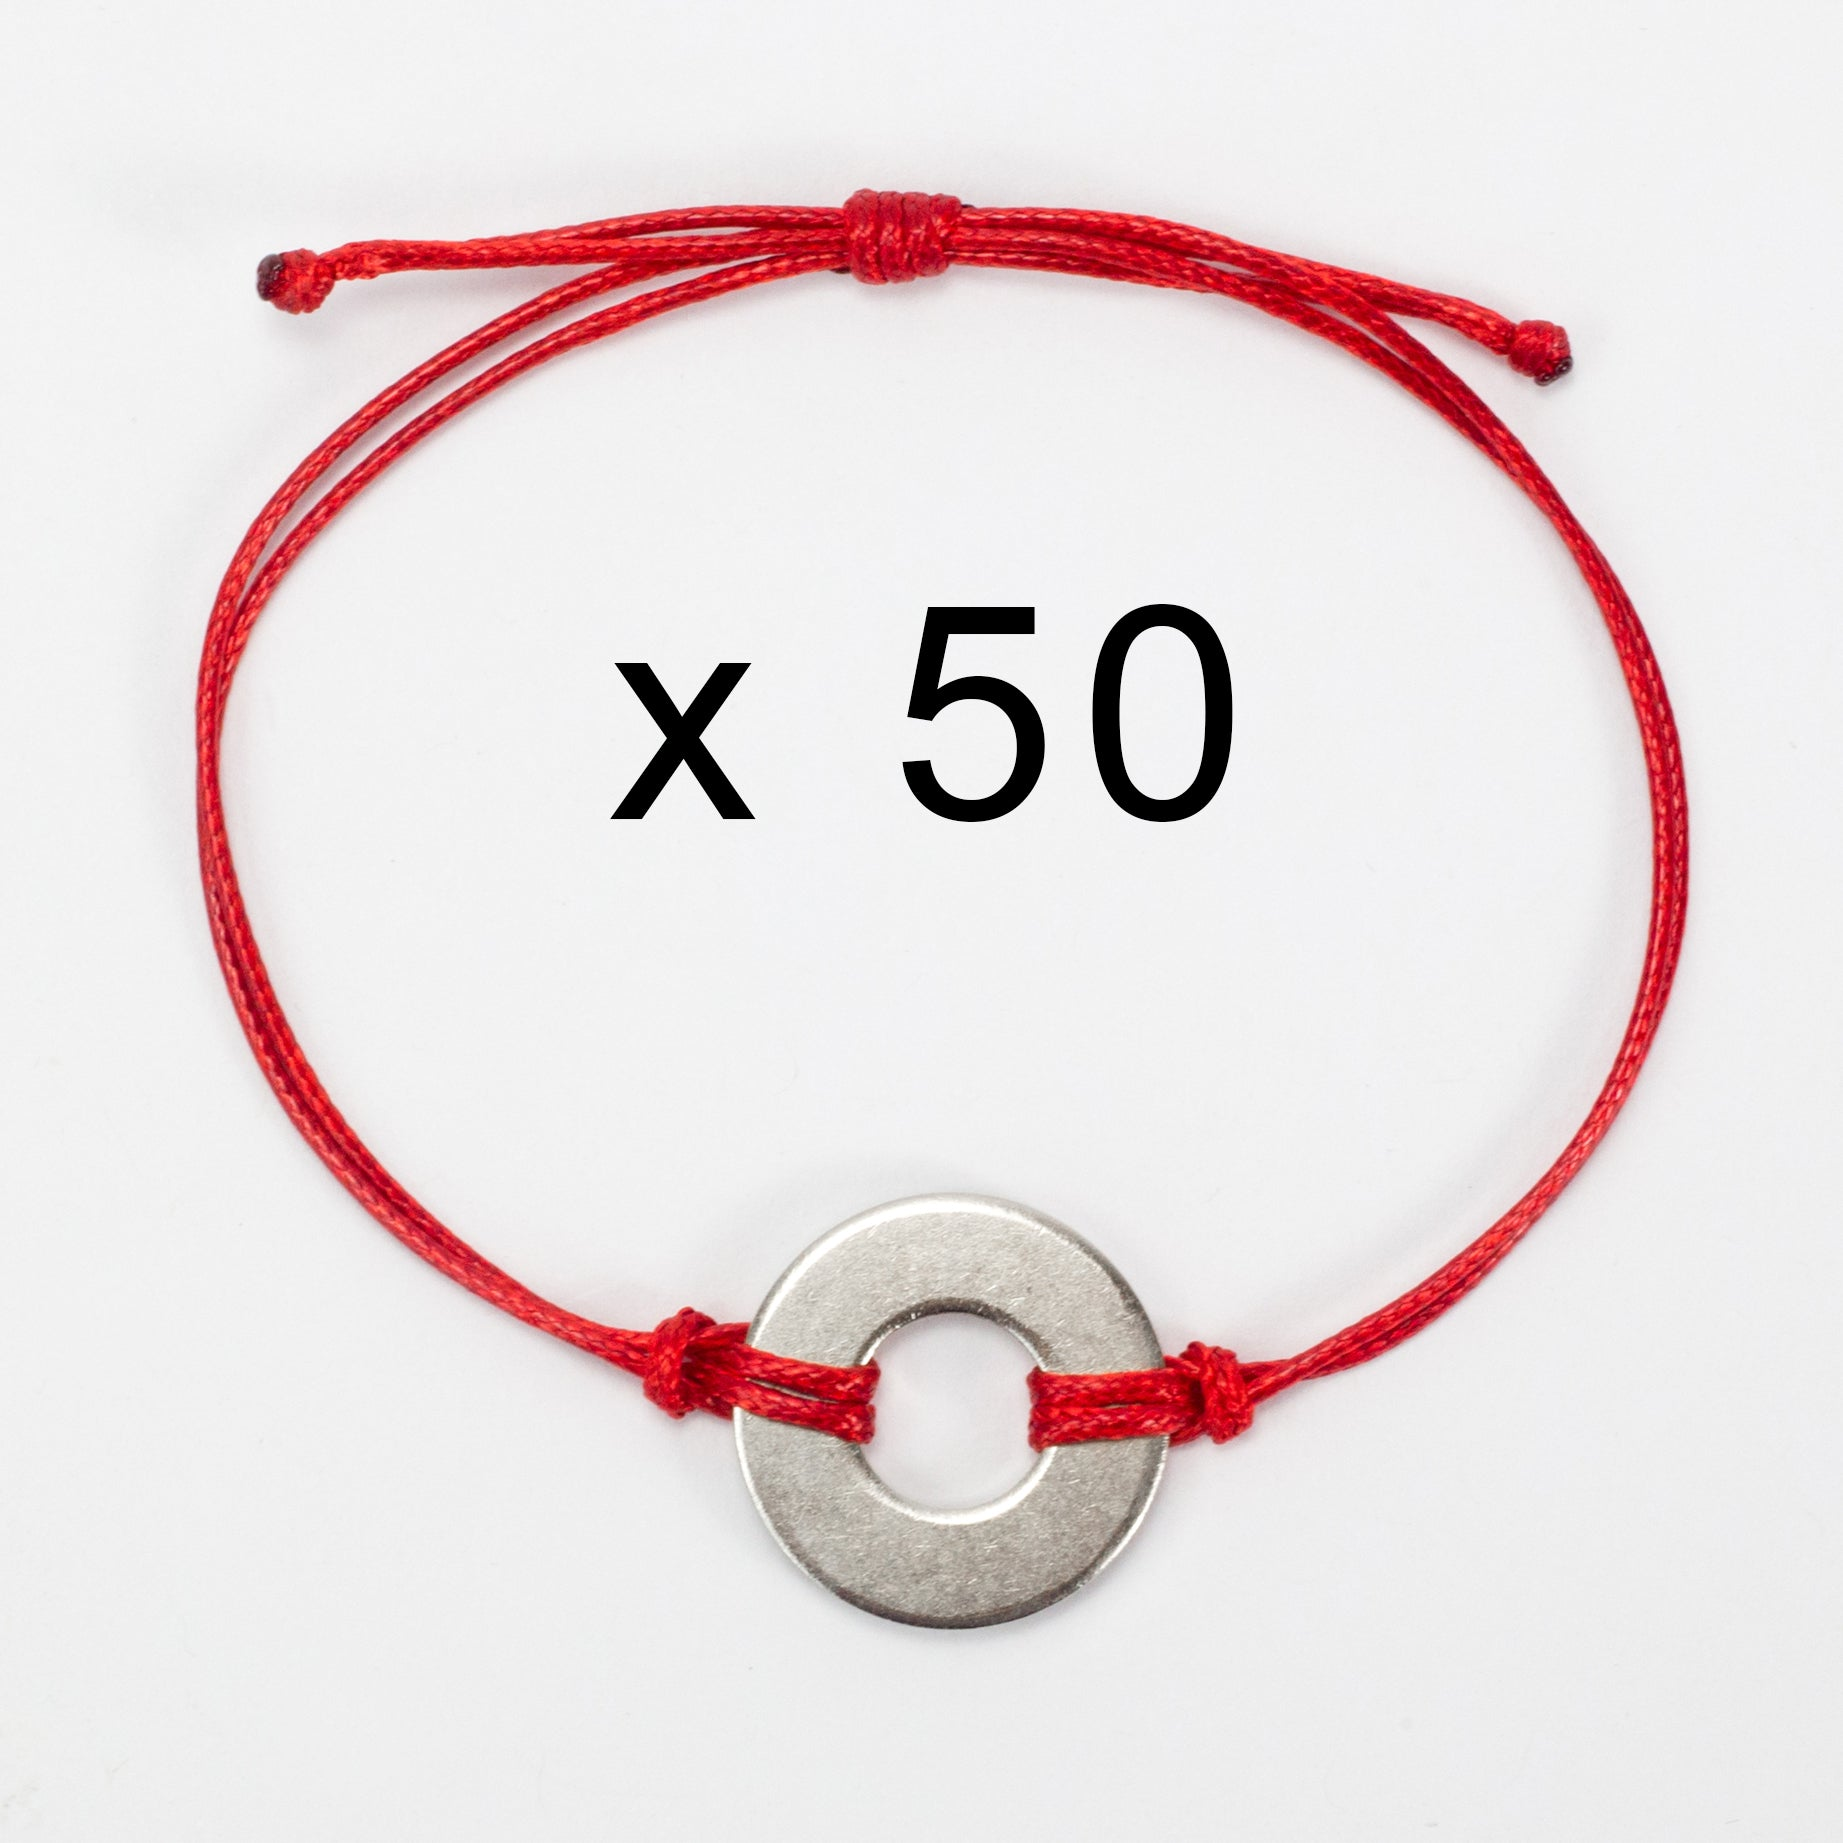 MyIntent Refill Classic Bracelets Red String set of 50 with Nickel tokens